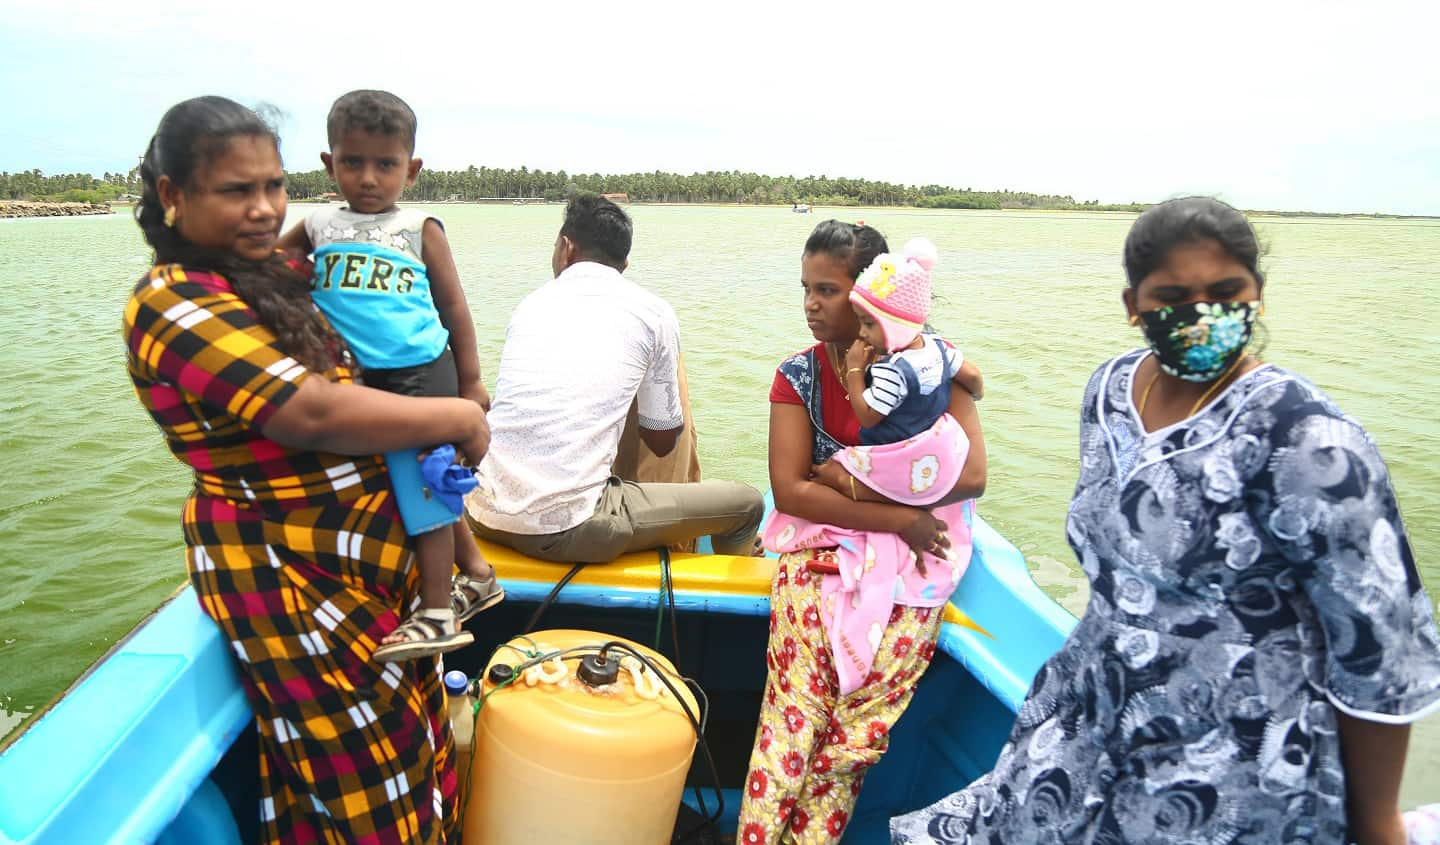 A man and three women on a small boat; two women are holding children.